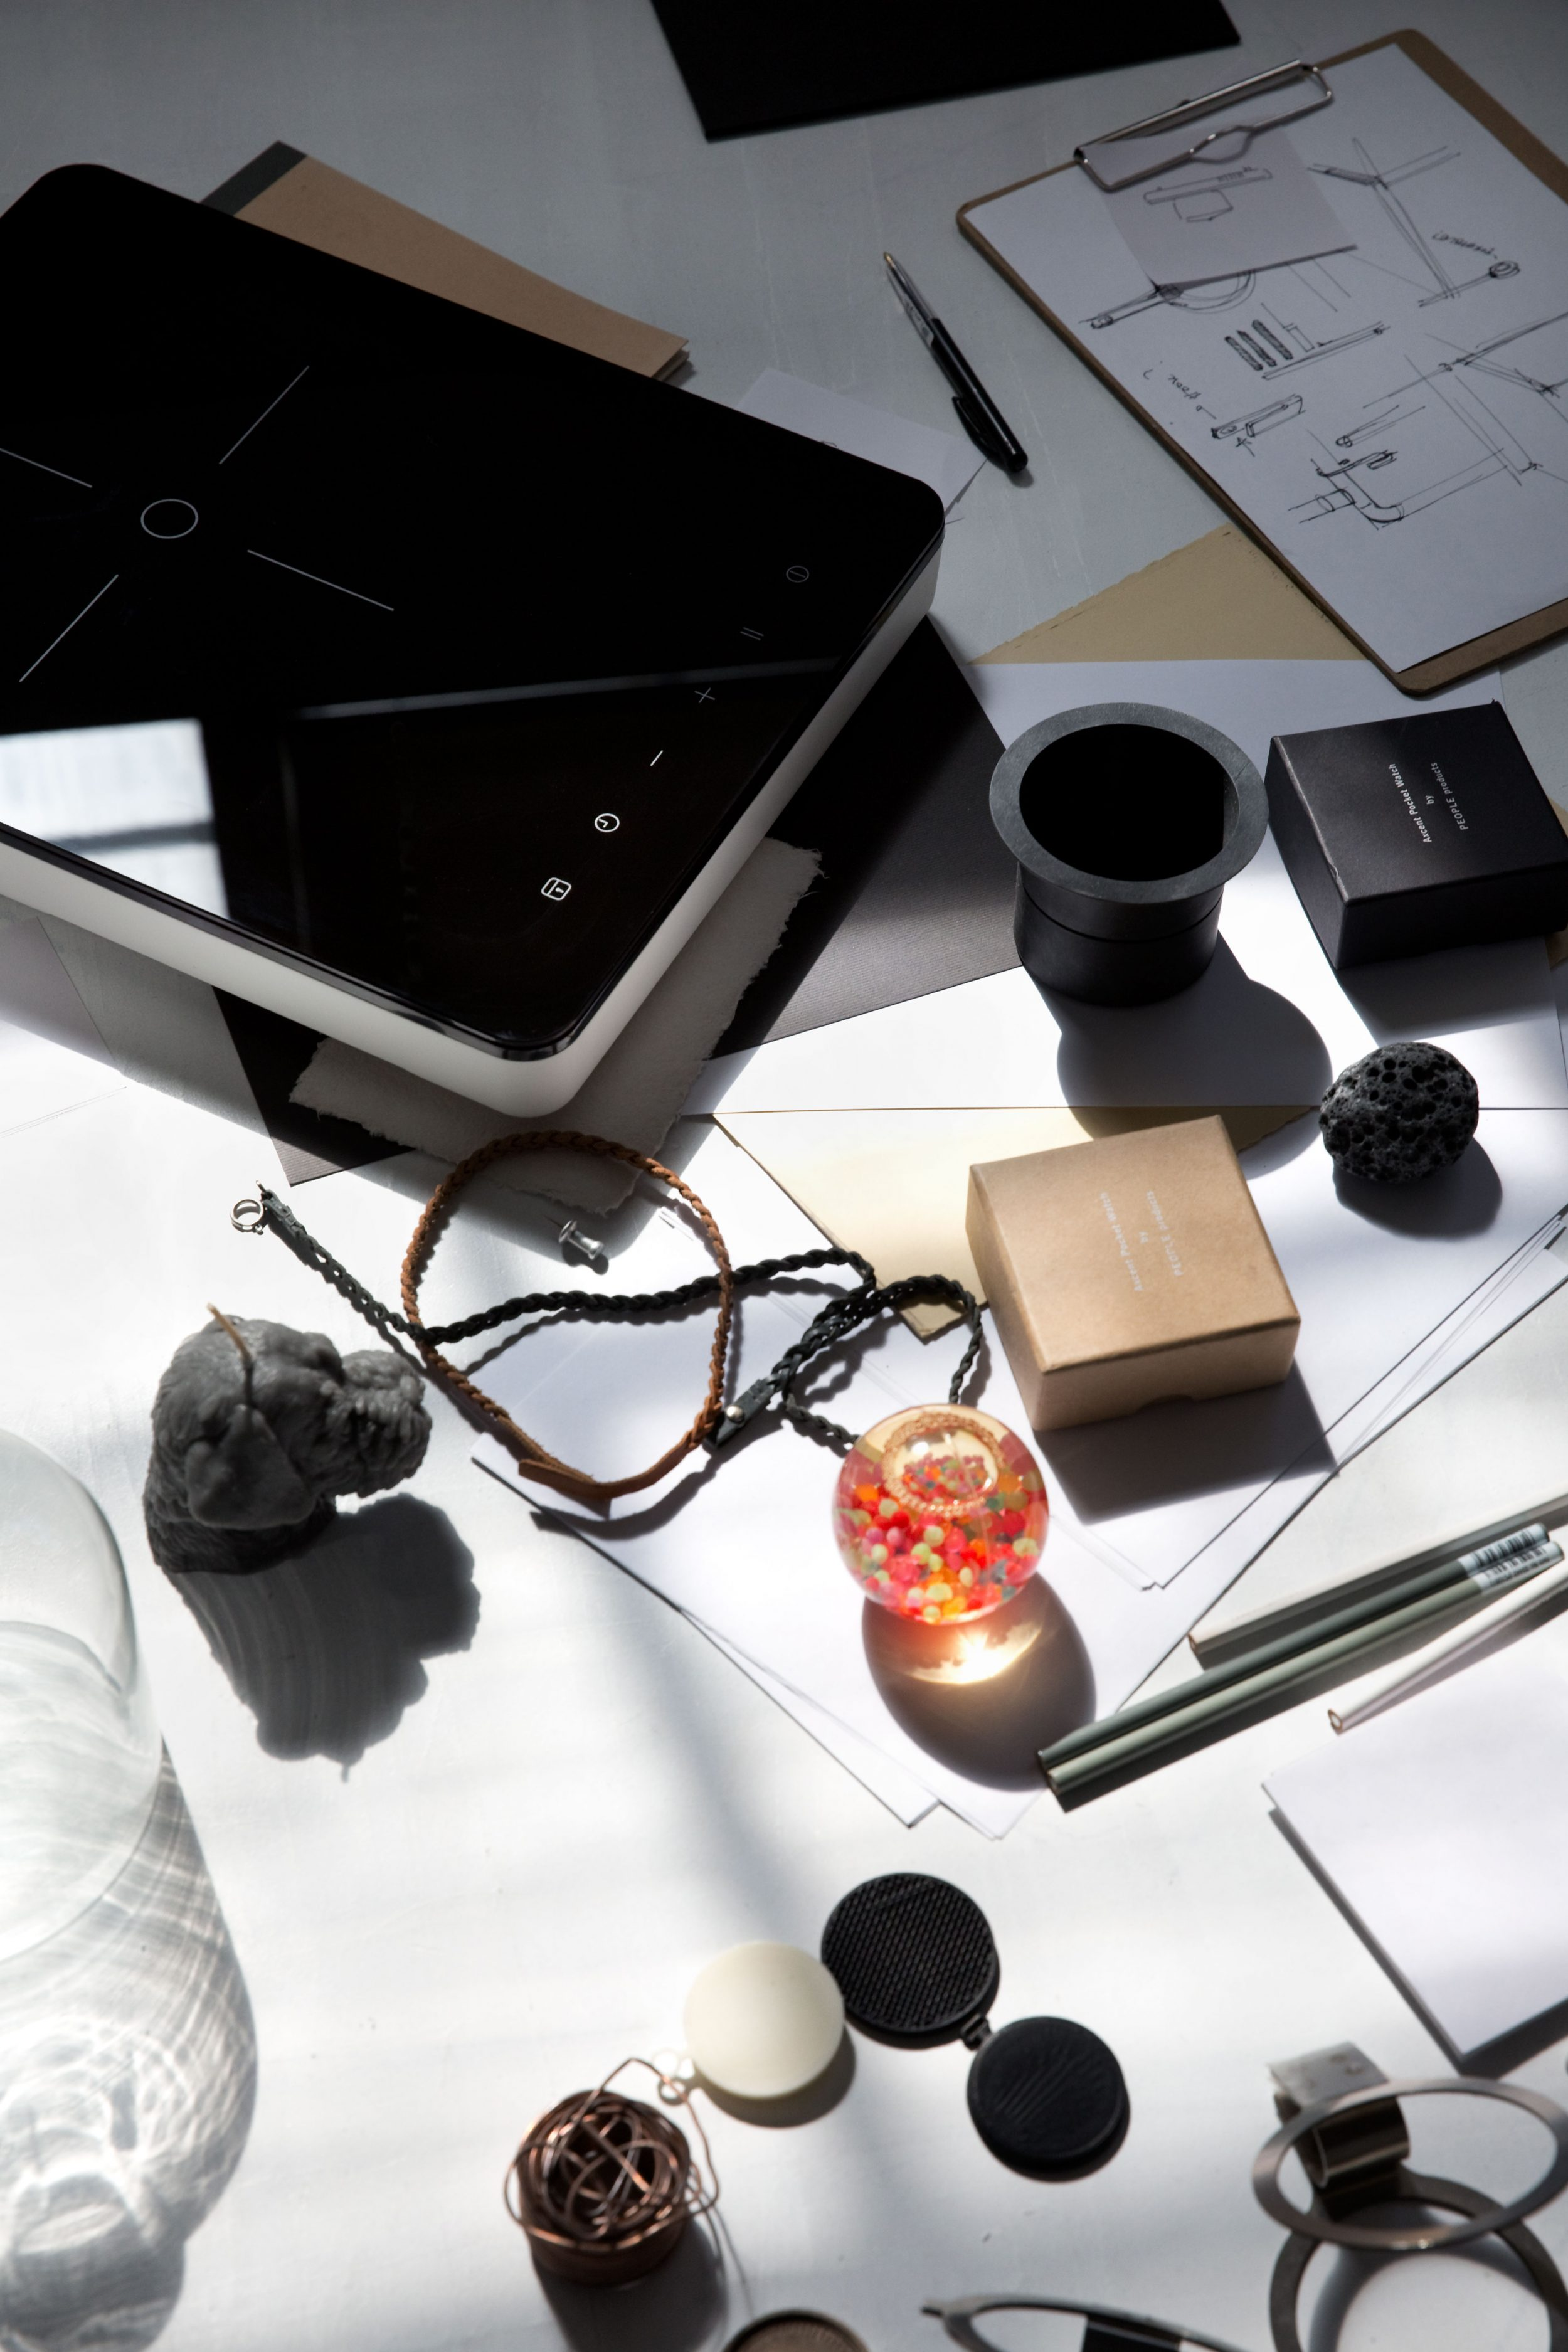 A portable induction hob placed on a desk filled with scattered paper and various objects.